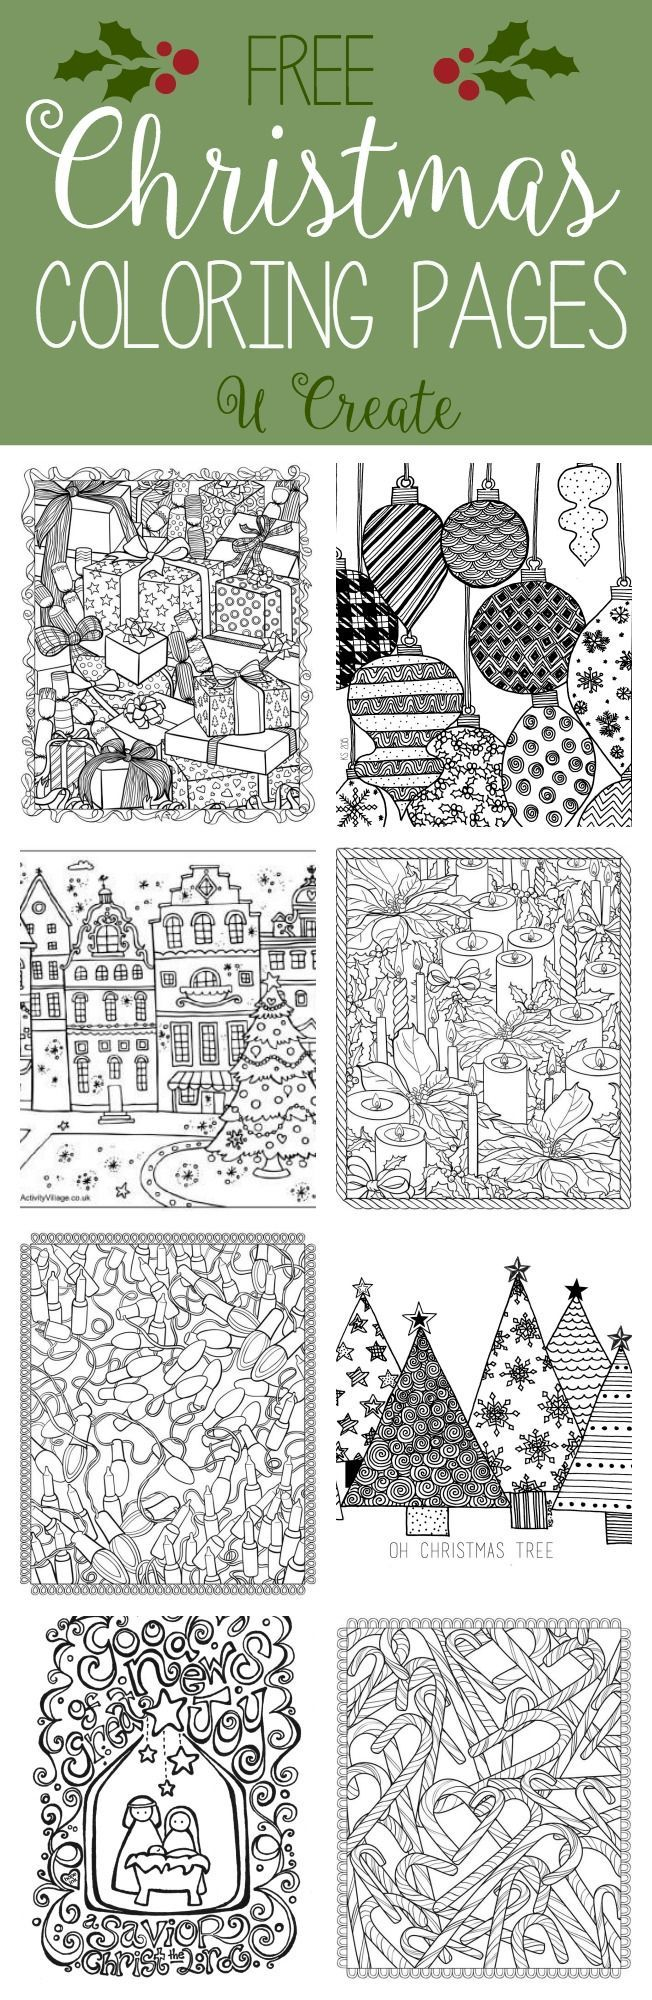 Coloring pages for donna flor - We Couldn T Leave Out Christmas When It Comes To Our Adult Coloring Page Roundups You Can T Walk Into A Store Without Seeing Those Popular Adult Coloring